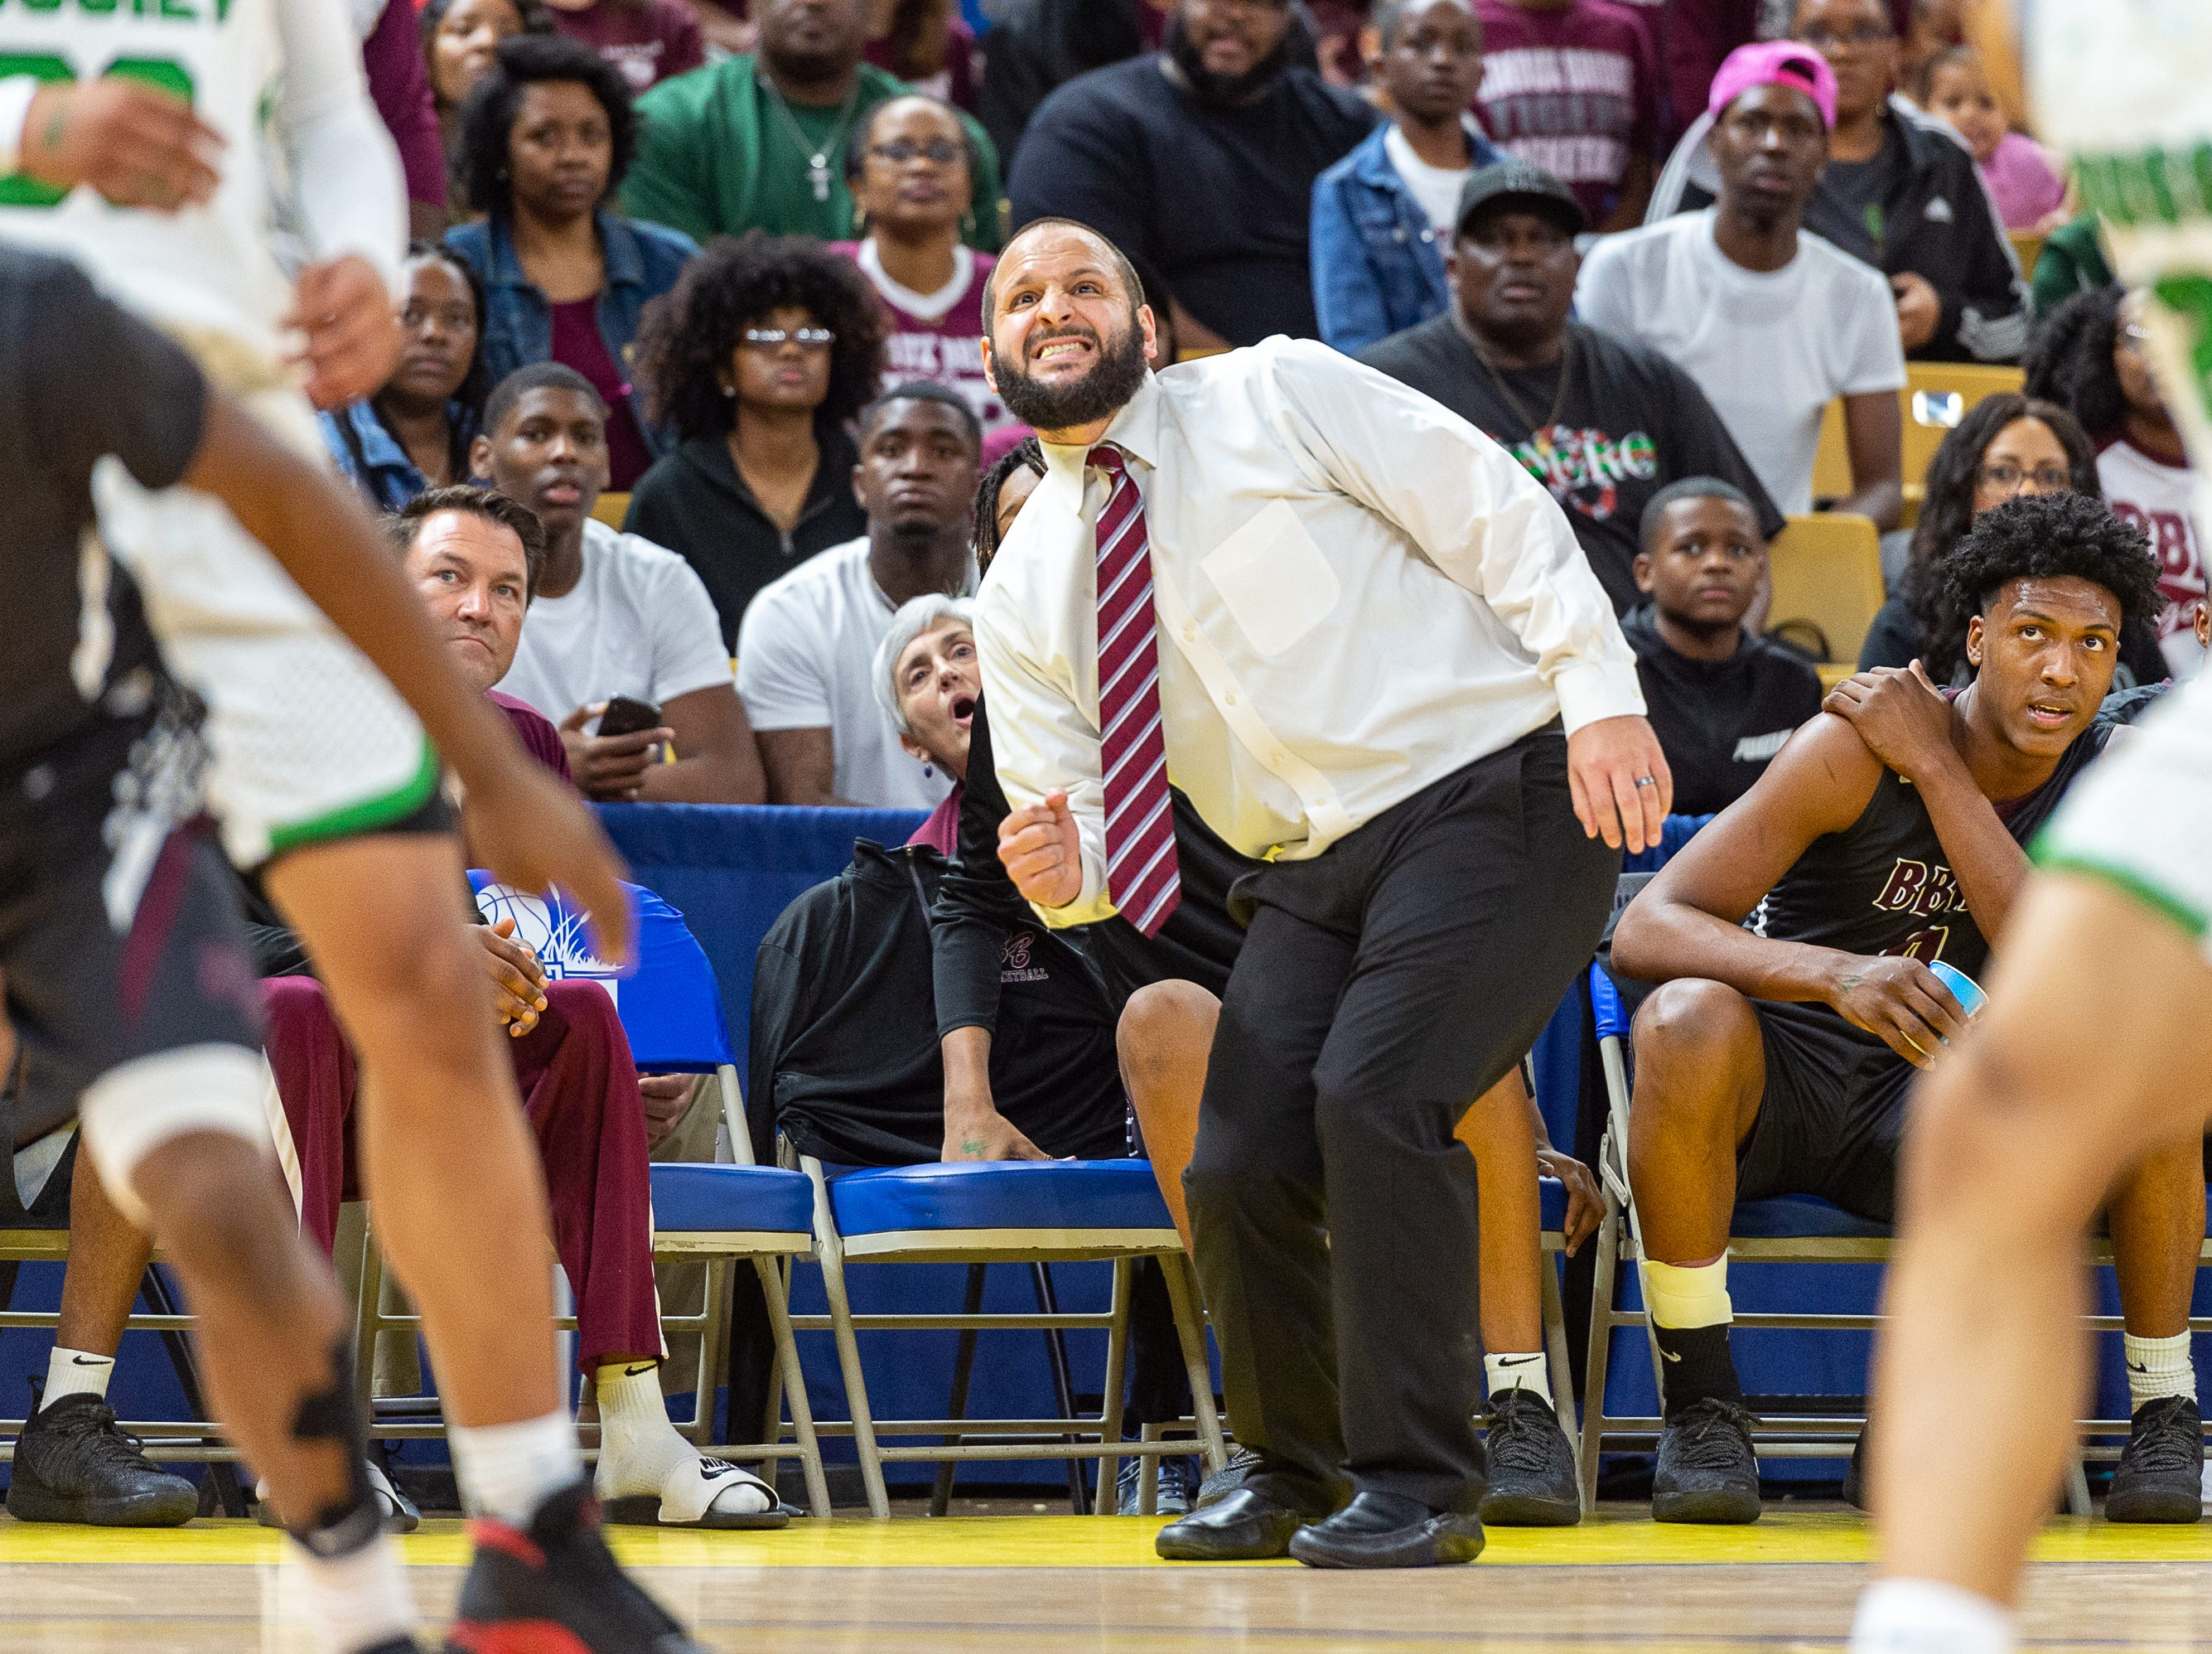 Head Coach Chad Pourciau II on the bench as Breaux Bridge takes on Bossier in the Allstate Sugar Bowl/LHSAA Boys' Marsh Madness State Championship. Friday, March 8, 2019.